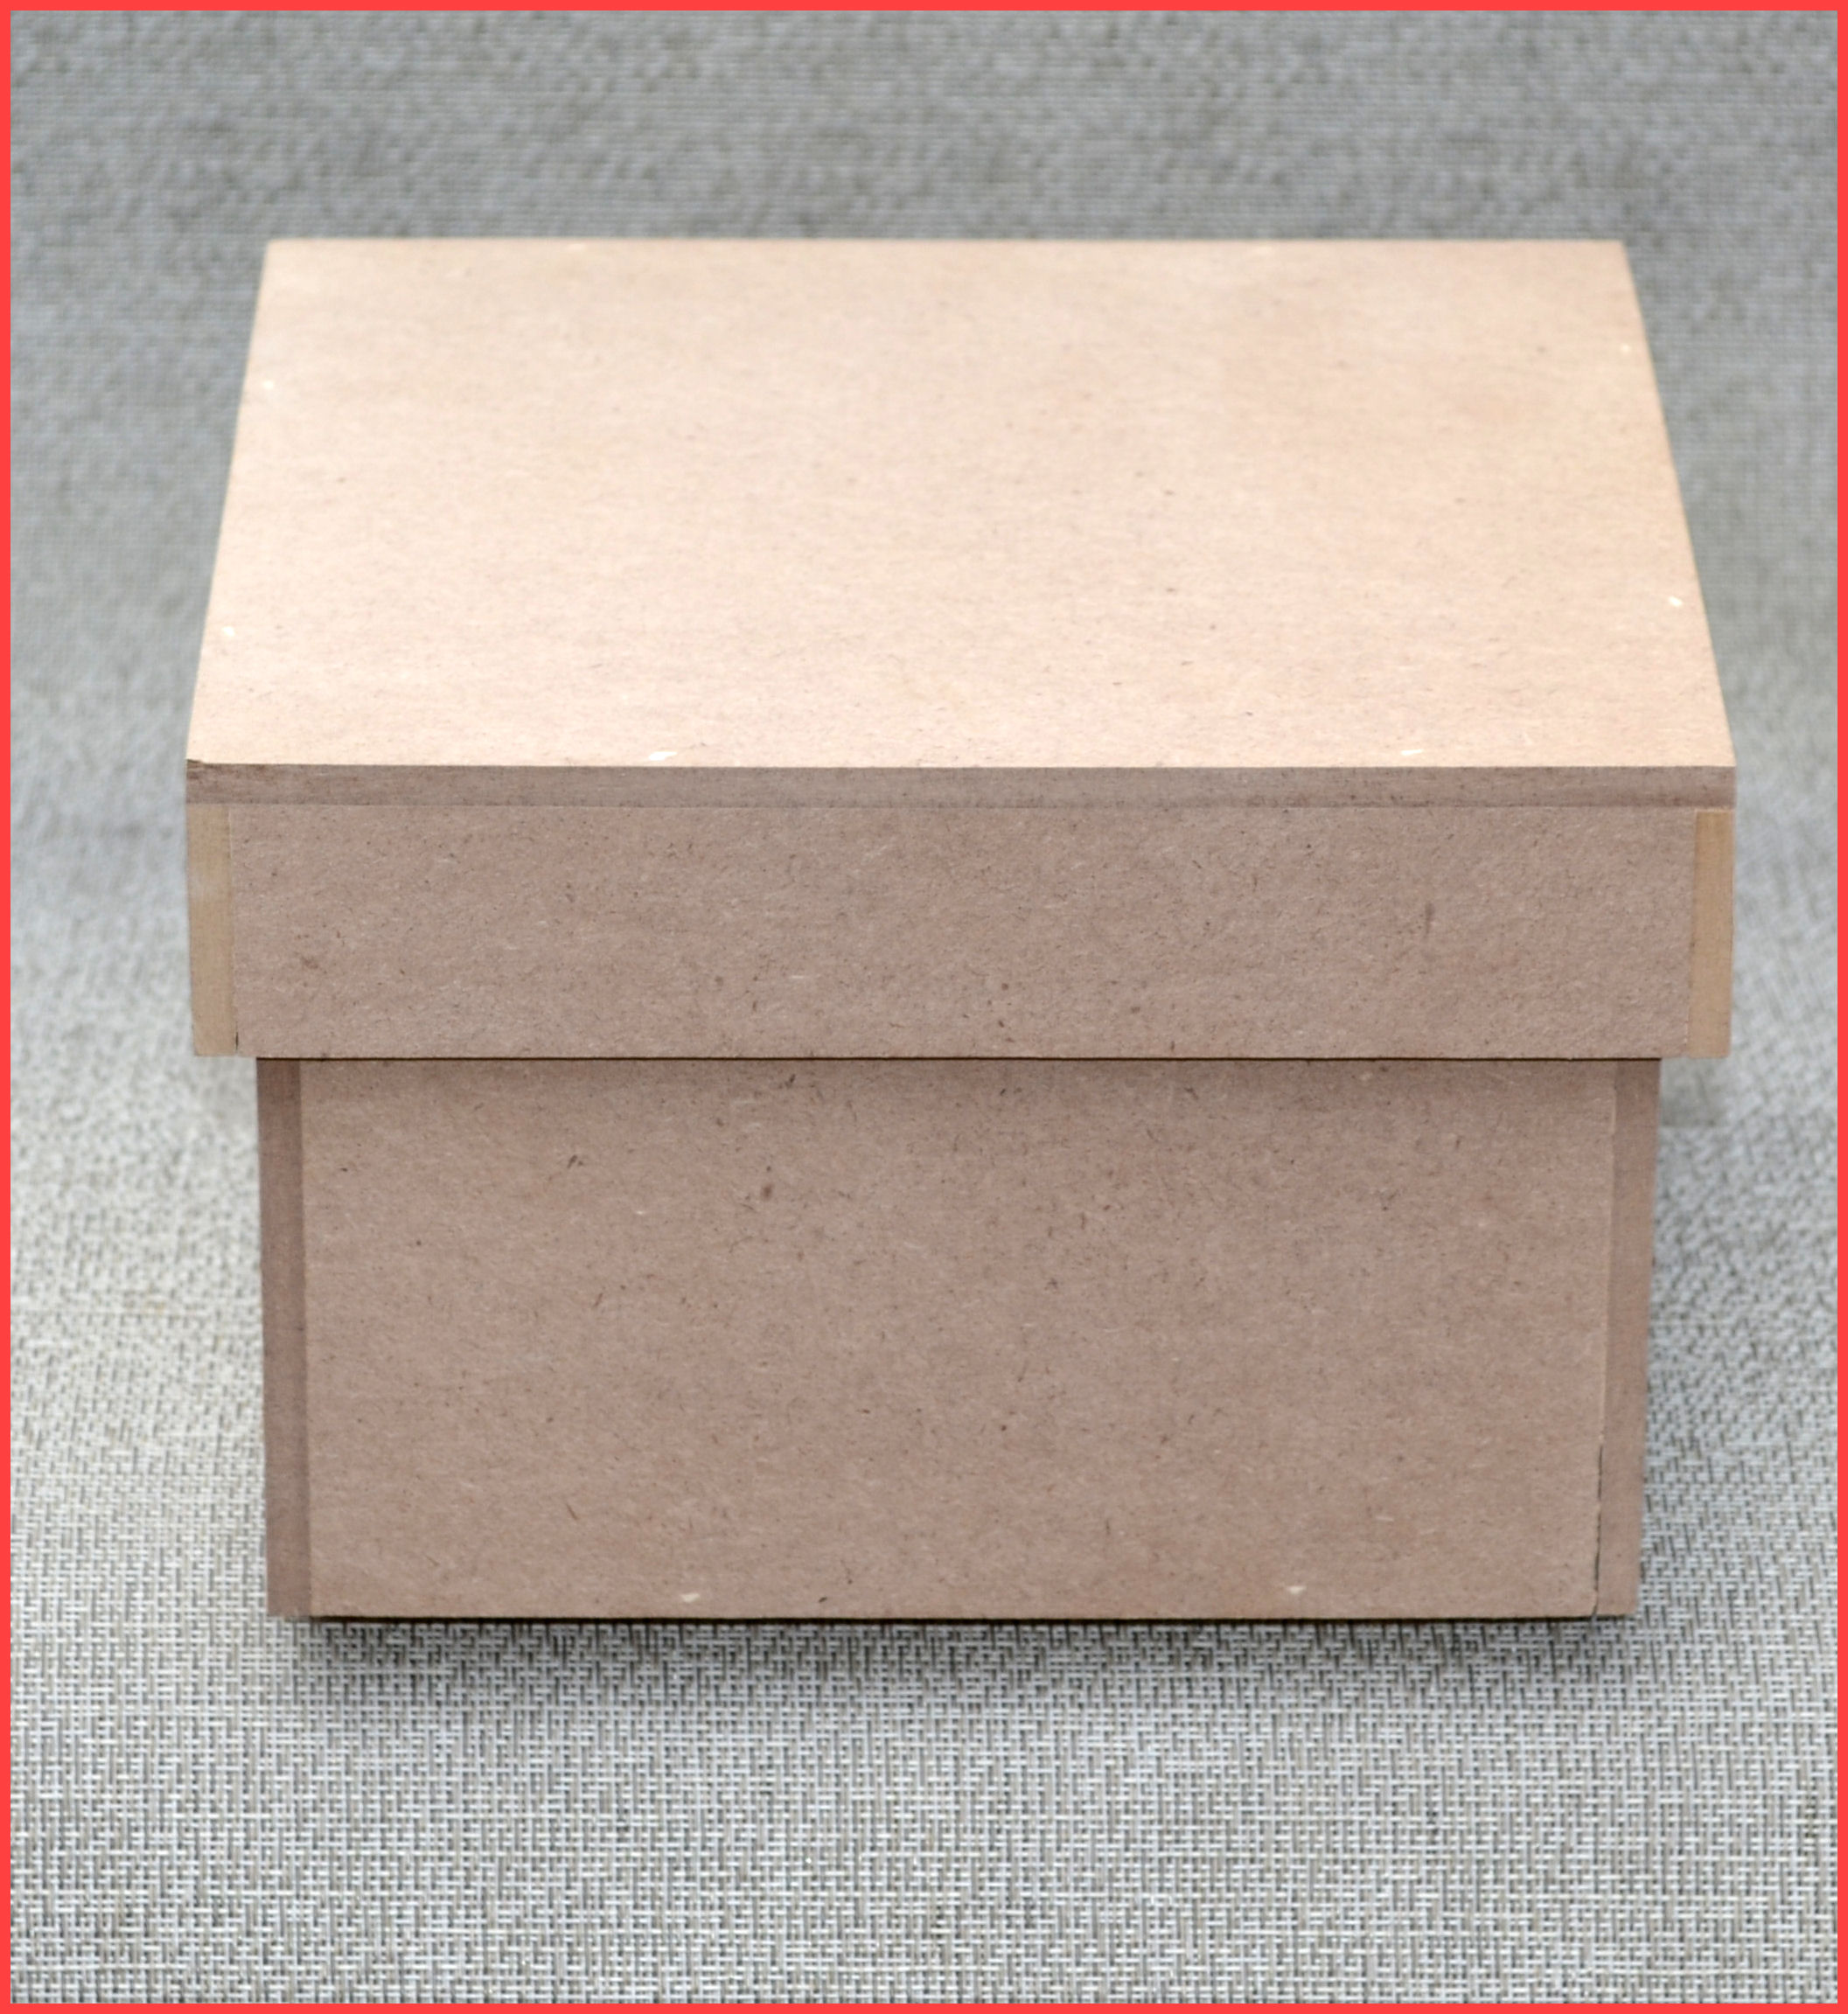 wood-box-with-lid-2-sizes-12x12x6-and-8x8x5.jpg